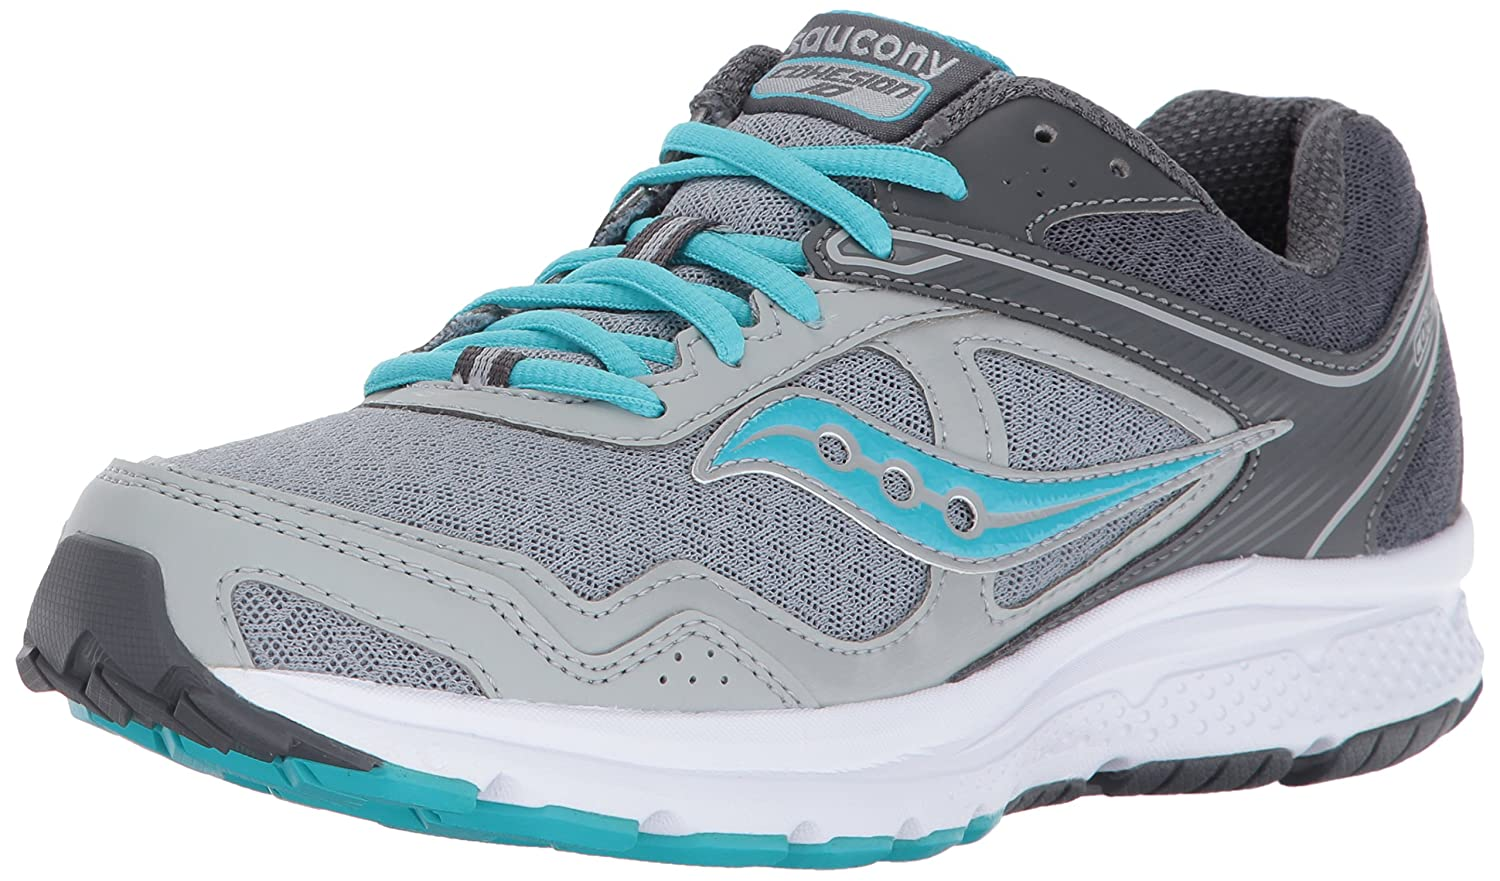 Saucony Women's Cohesion 10 Running Shoe B01N1W2ZAD 8 B(M) US|Grey Blue